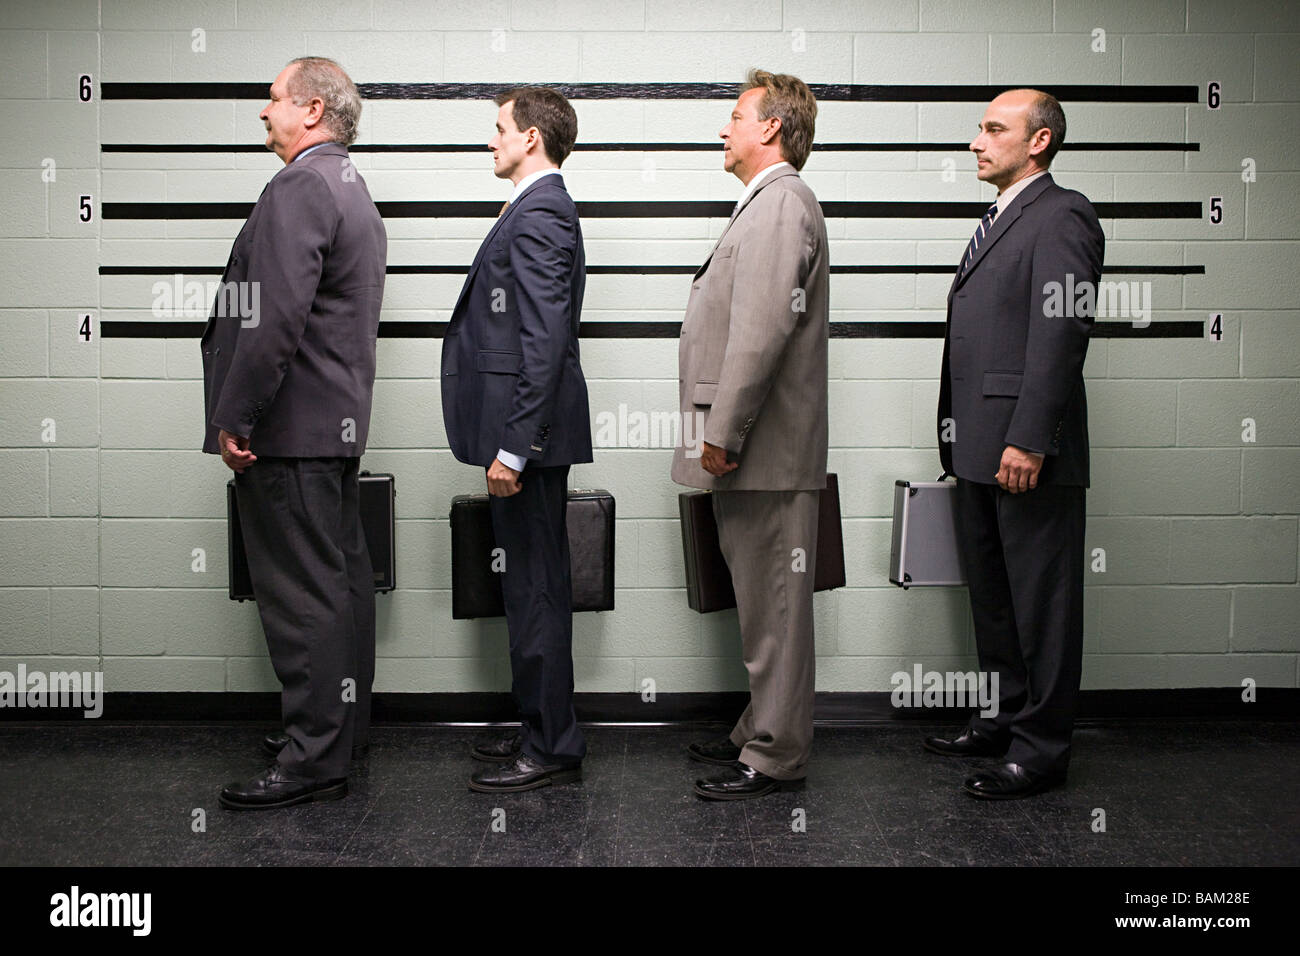 Man Wearing Underwear In A Police Lineup Stock Photo